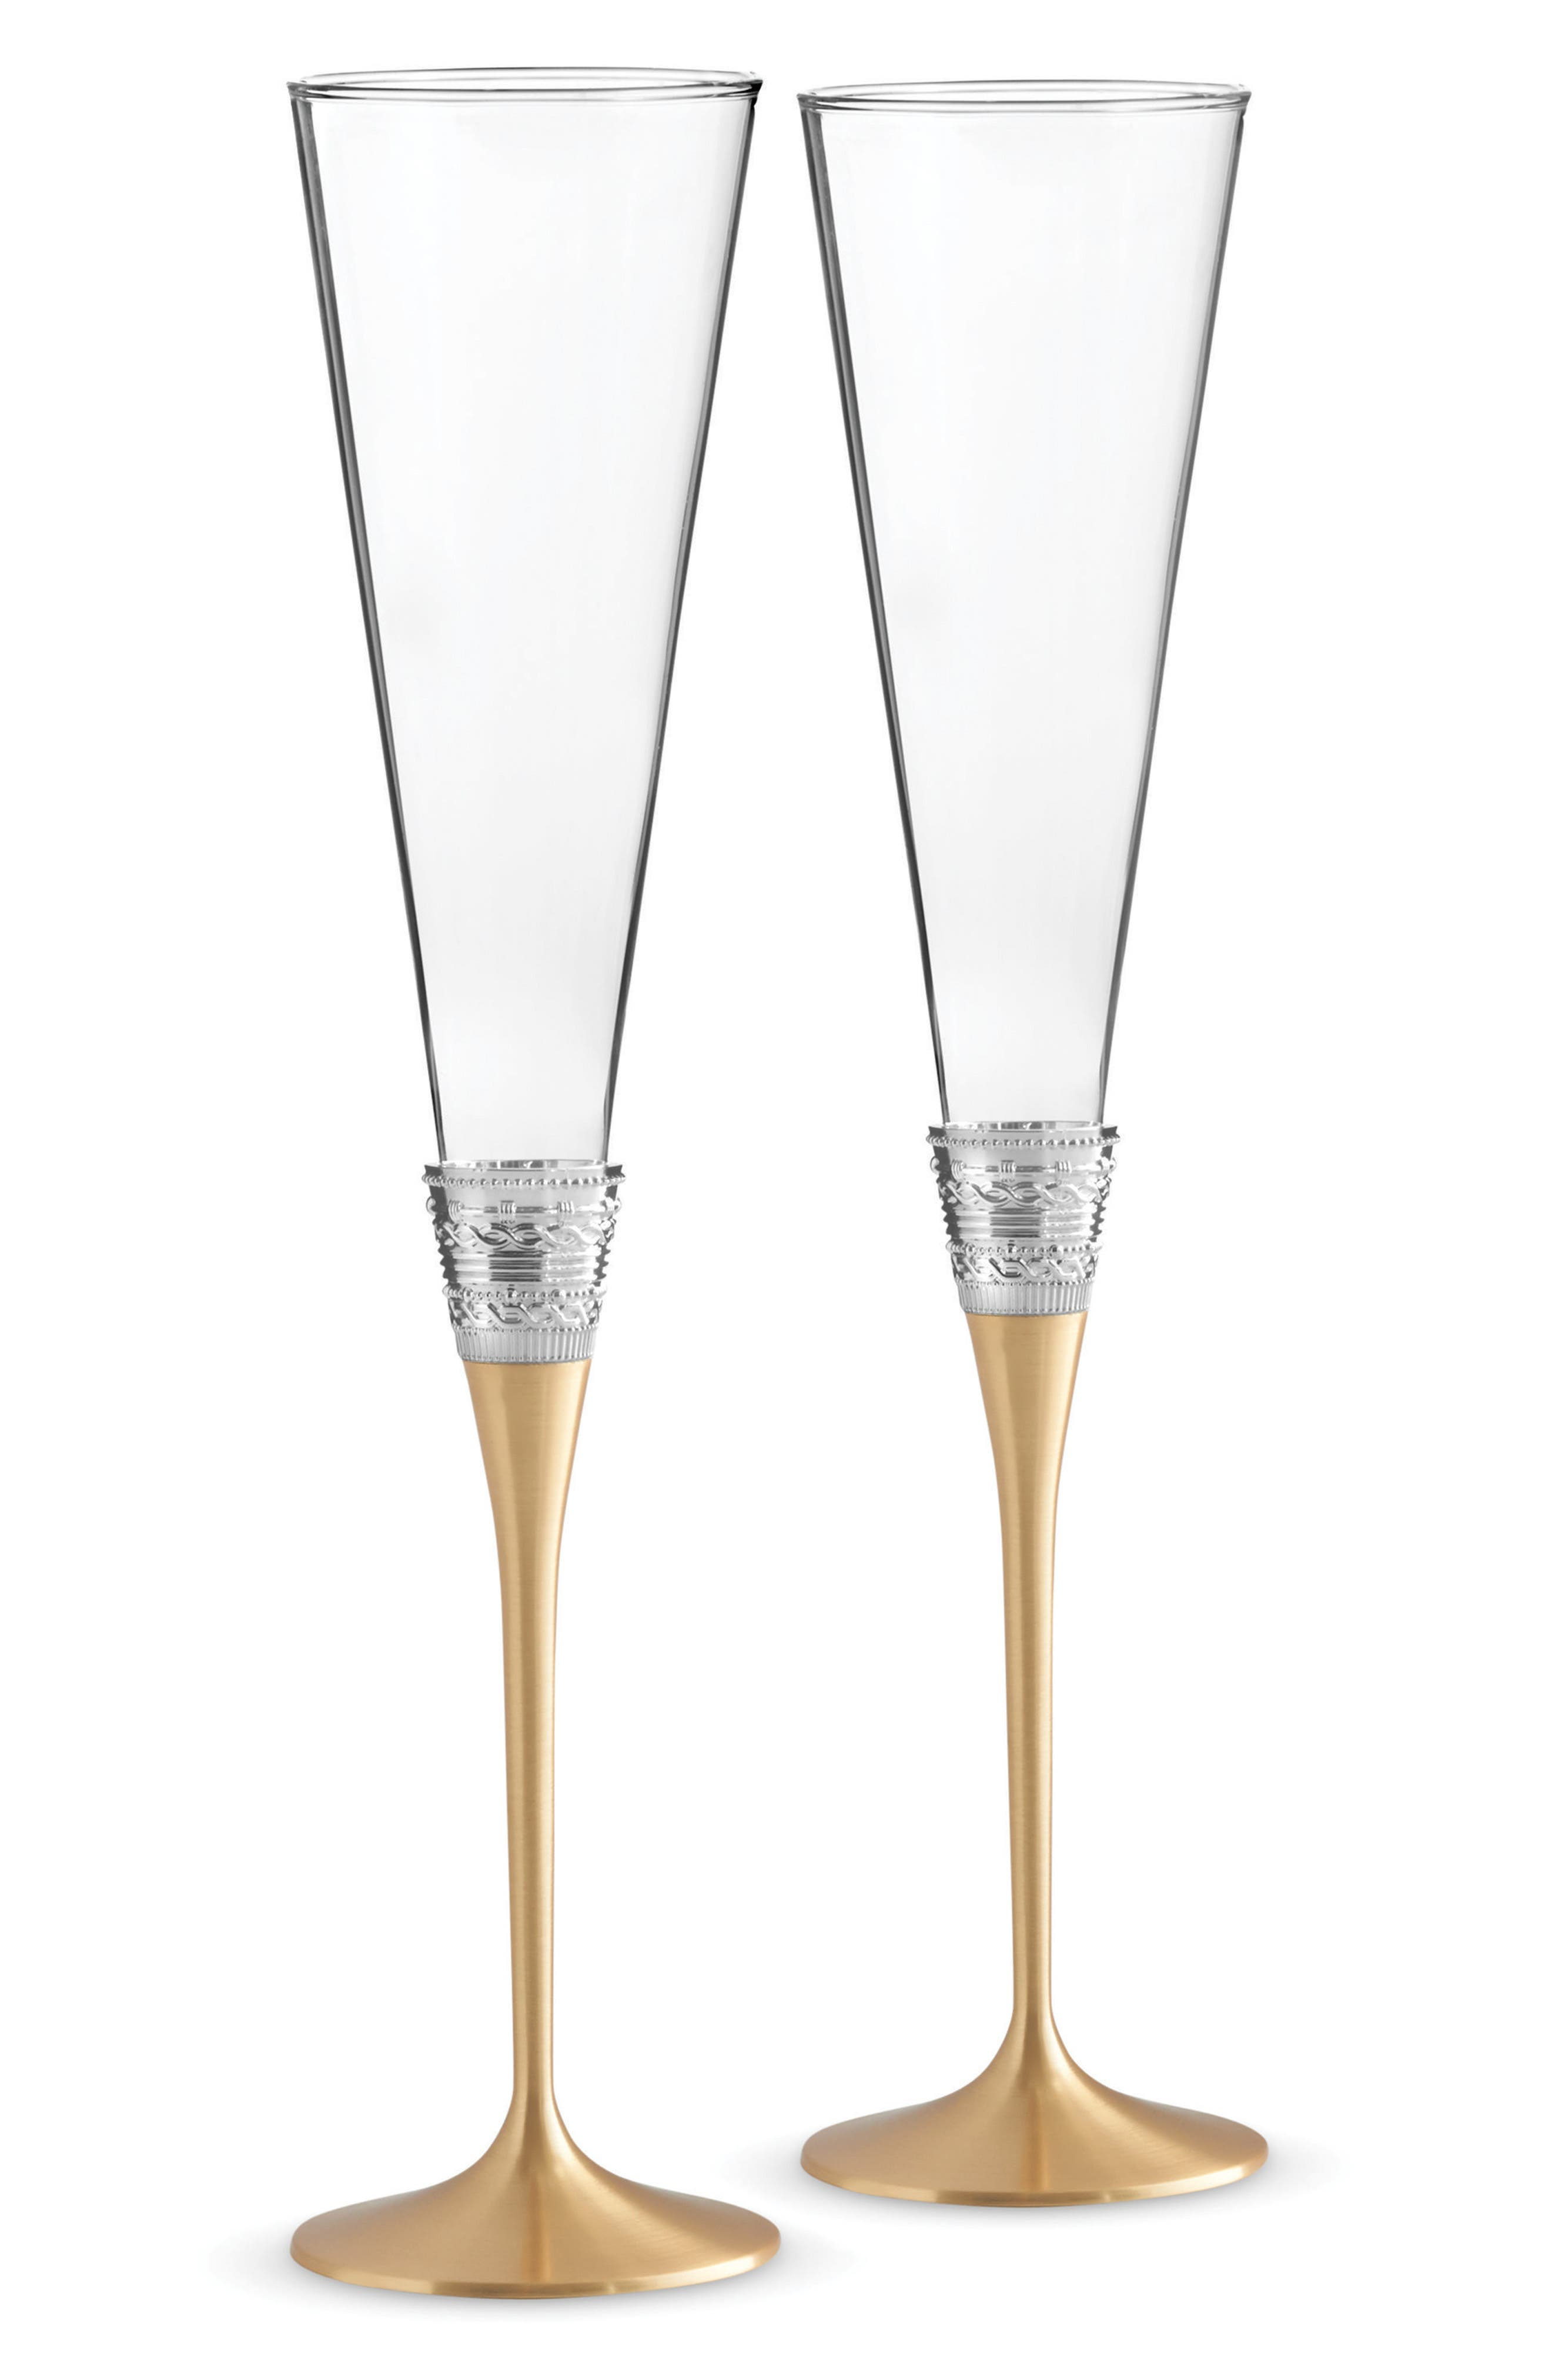 x Wedgwood With Love Collection Set of 2 Toasting Flutes,                             Main thumbnail 1, color,